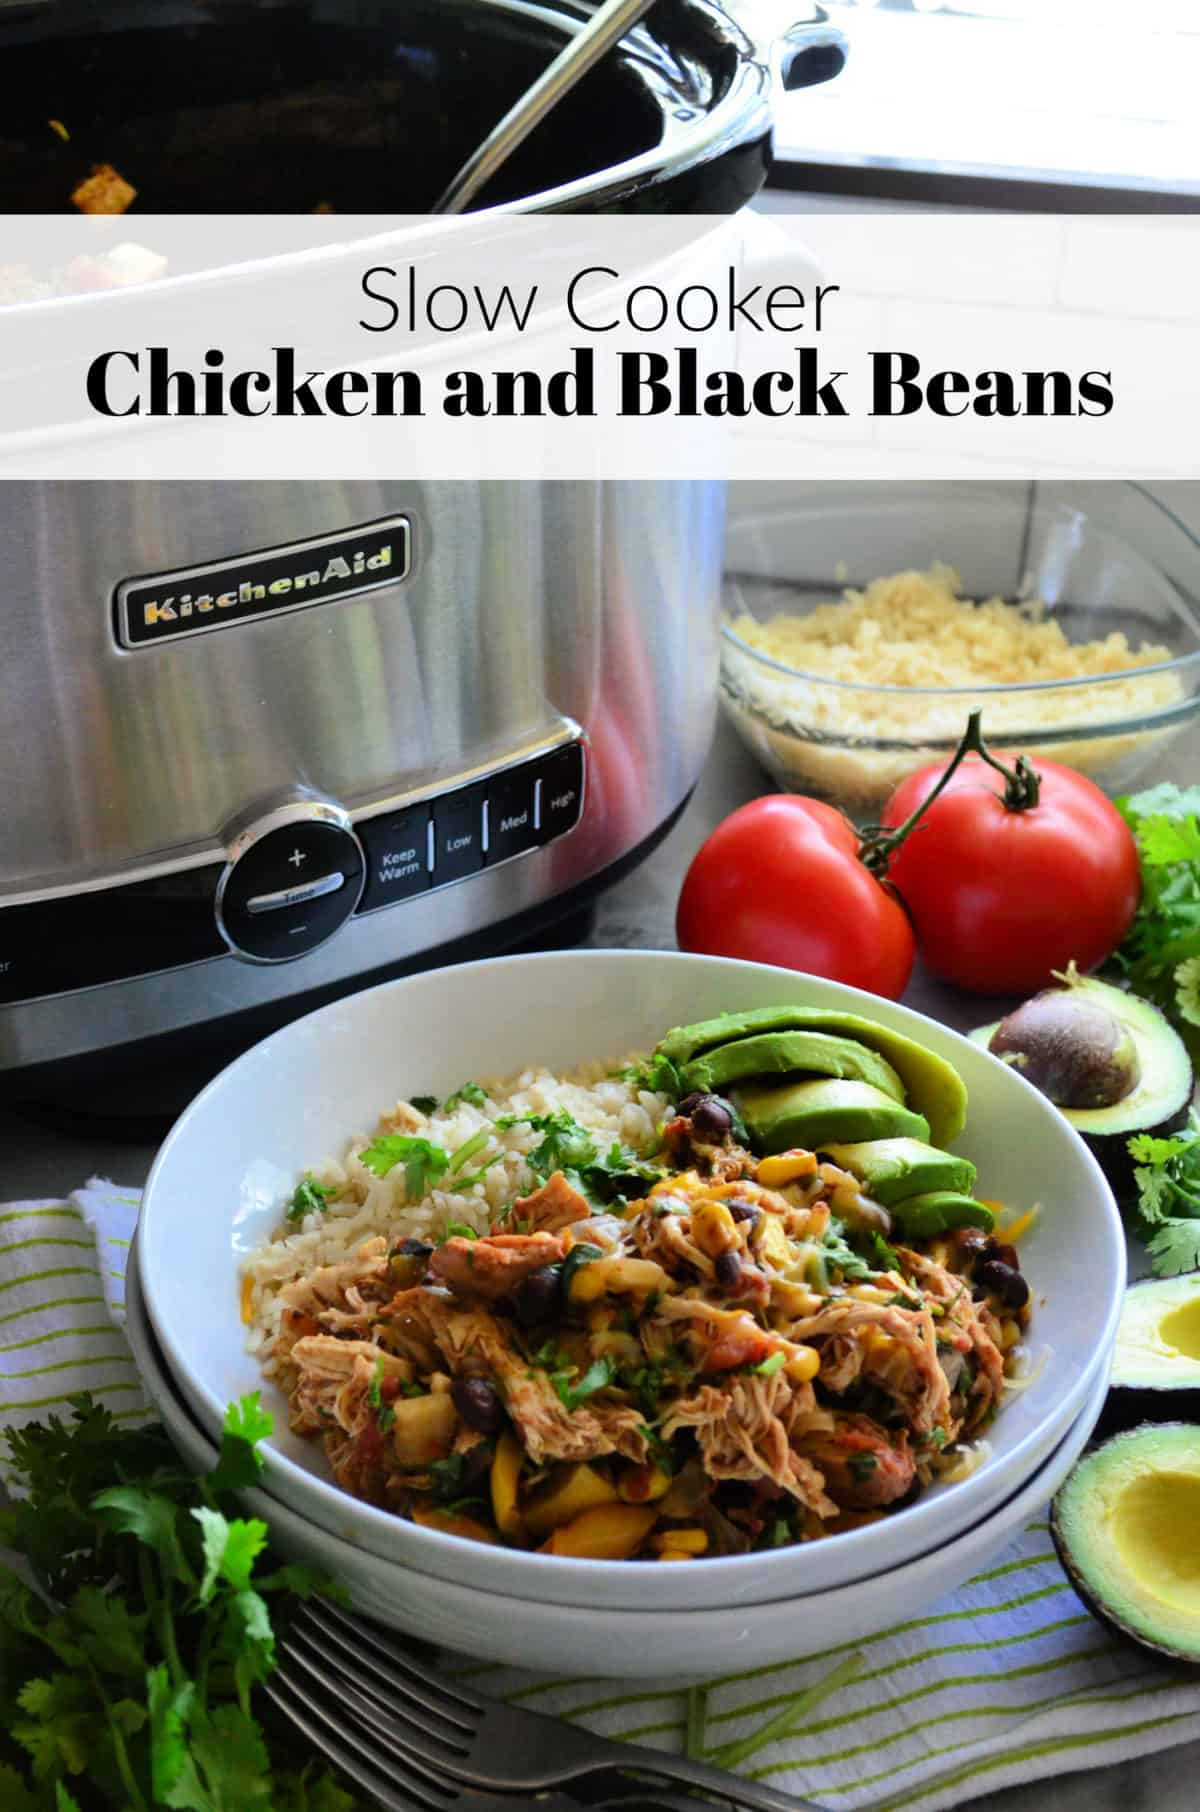 Chicken and Black Beans in the Slow Cooker